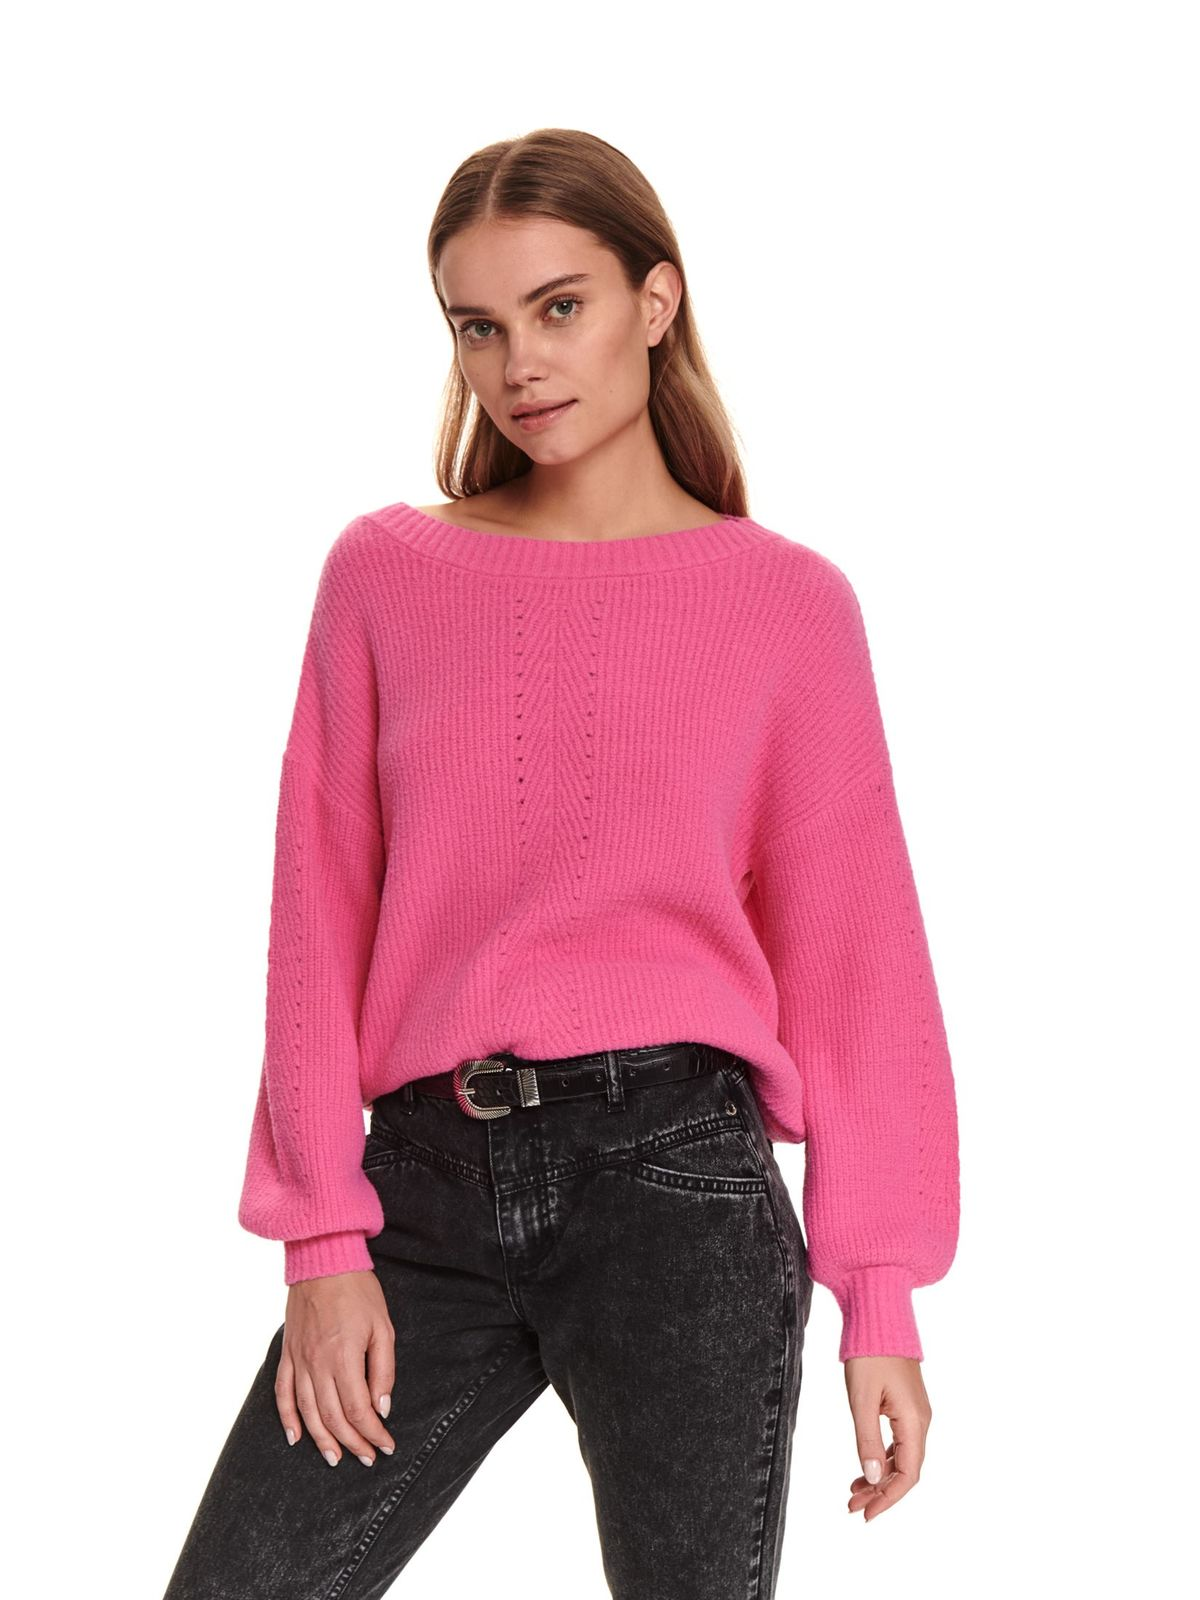 Pink sweater casual knitted flared